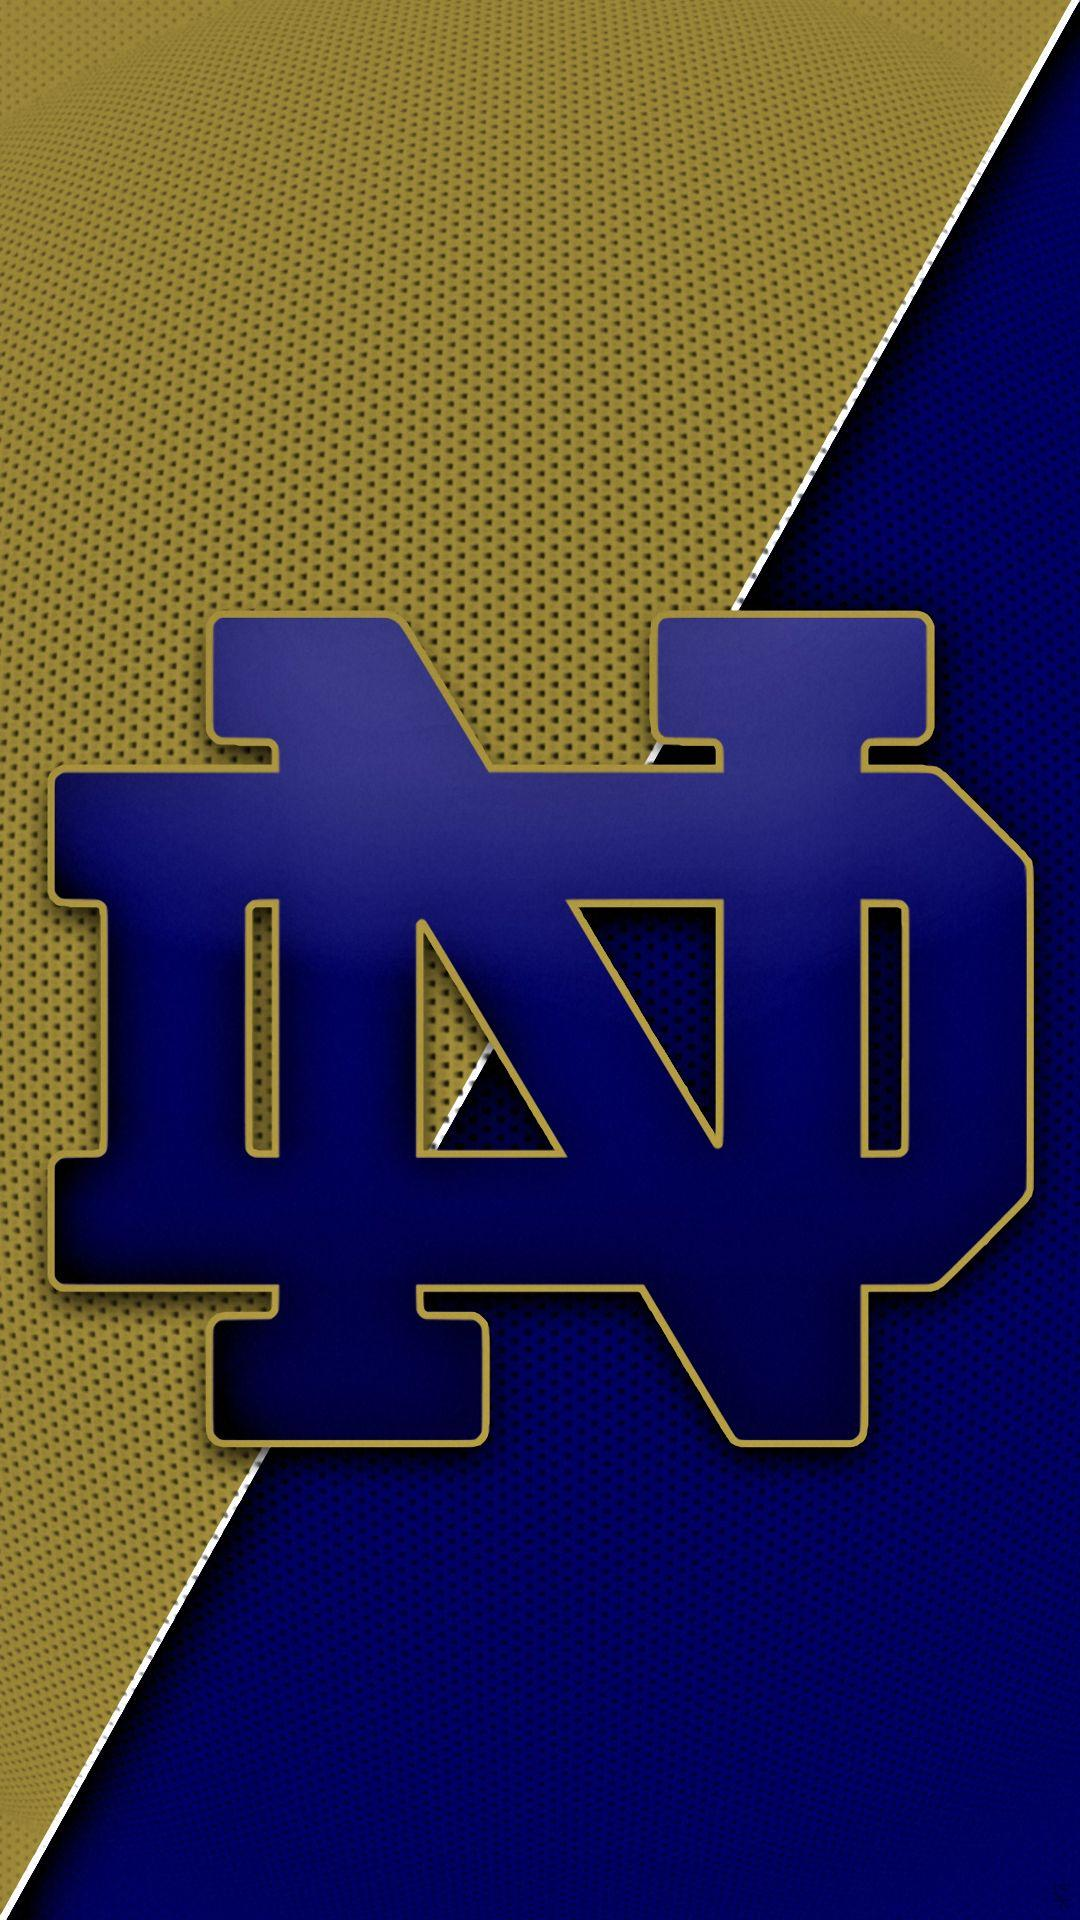 Notre Dame Fighting Irish Football Wallpapers - Wallpaper Cave